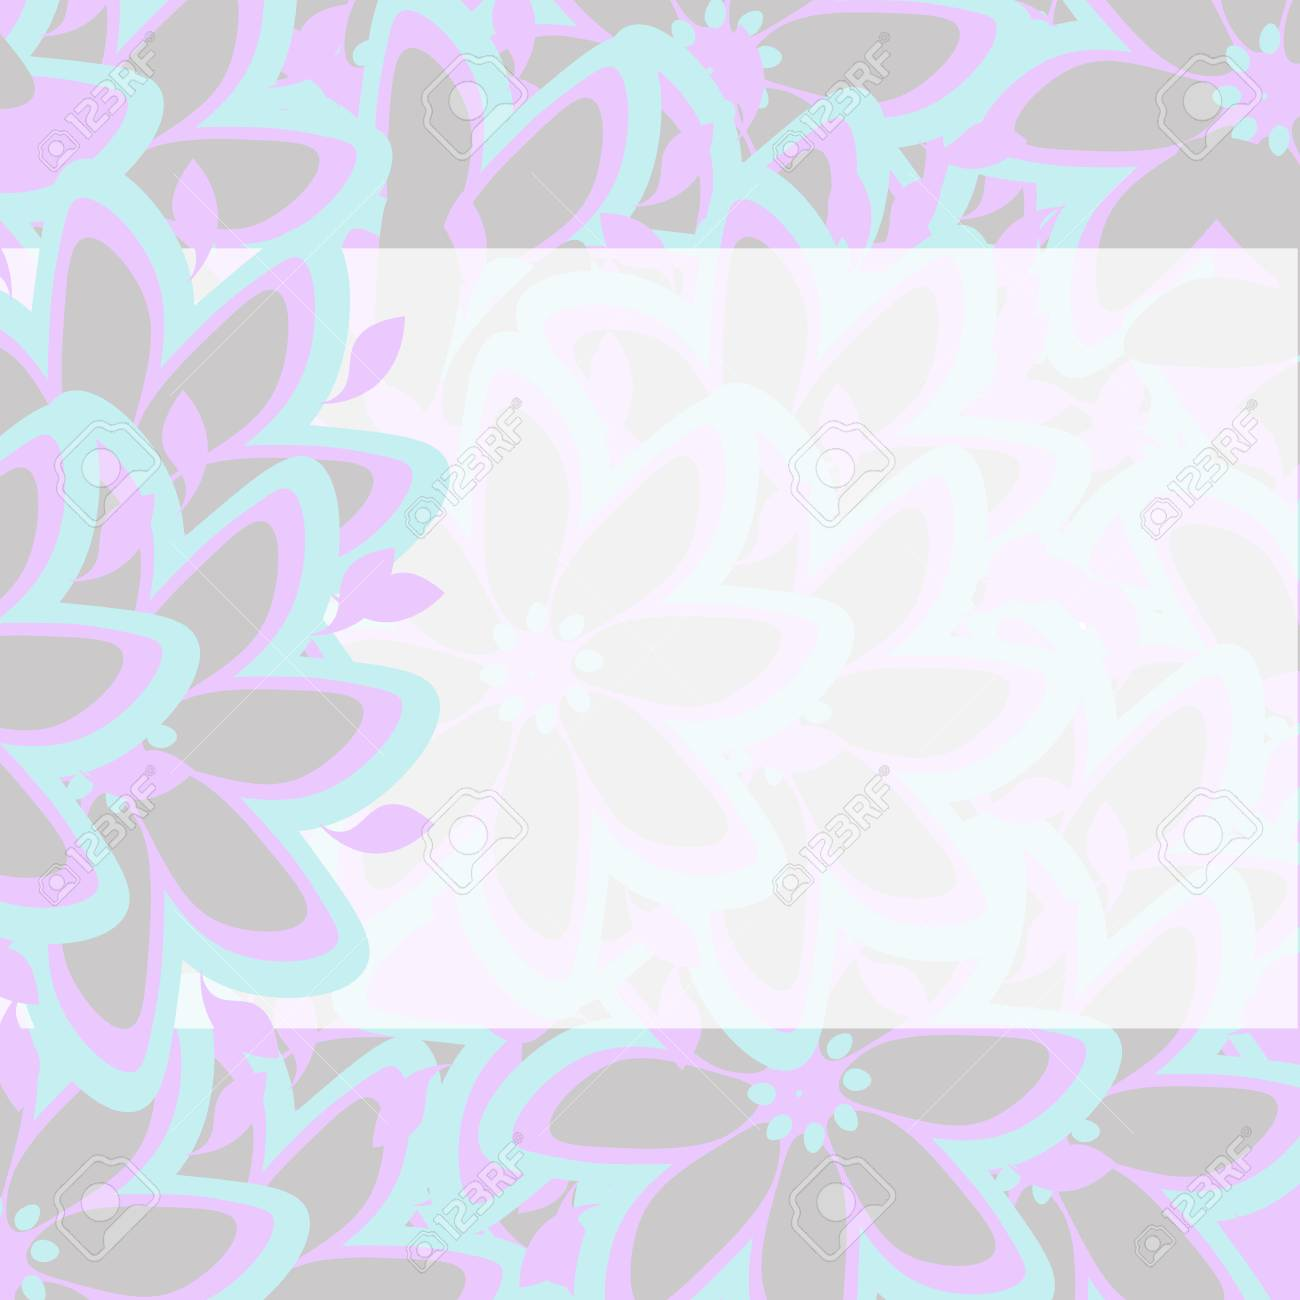 Background Template Wedding Birthday Invitation Abstract Floral